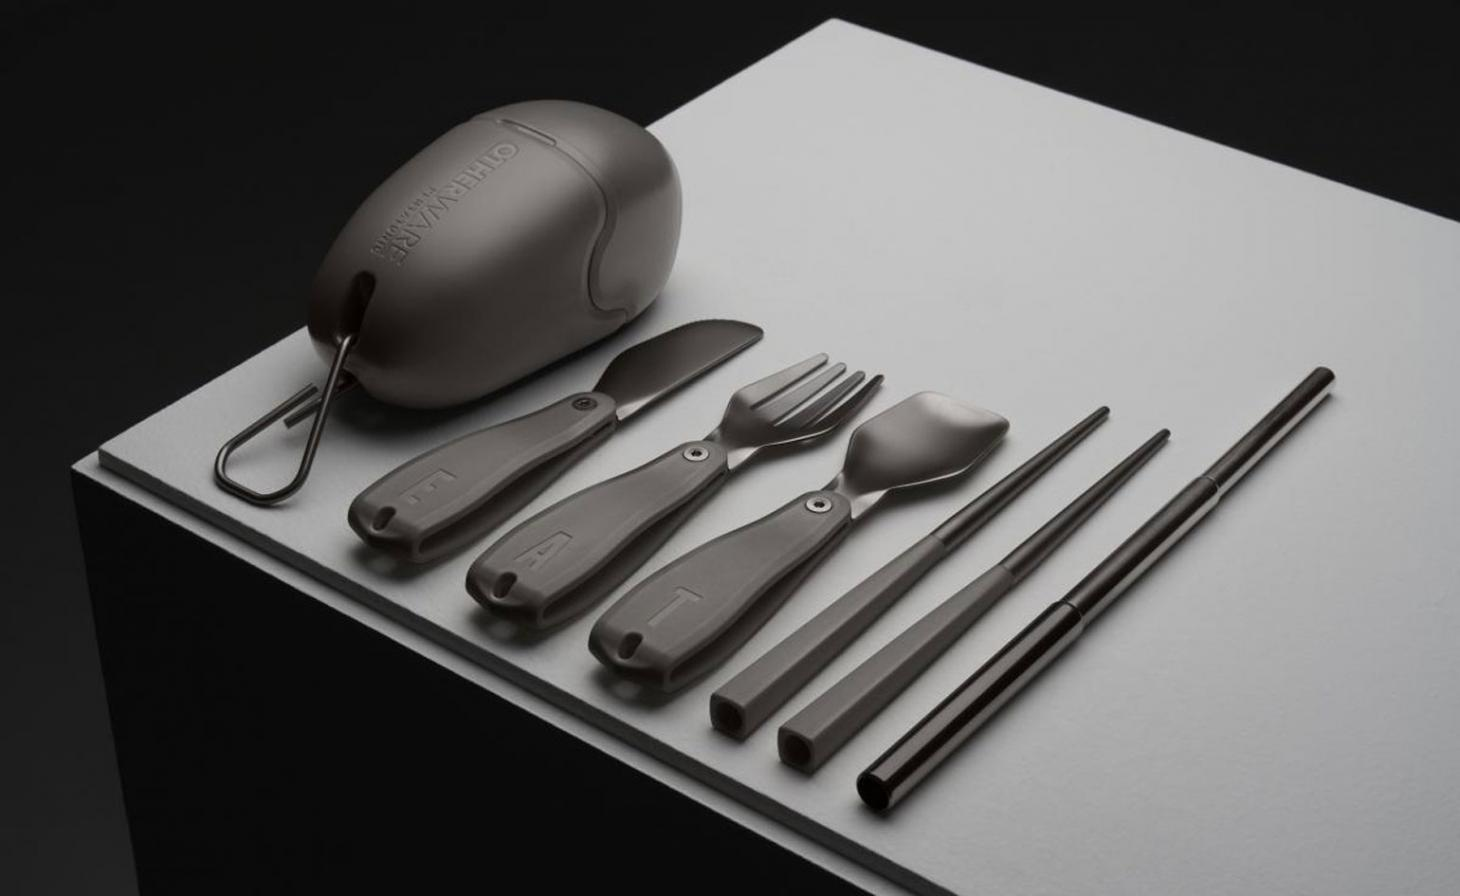 Dark knives and forks next to a small case